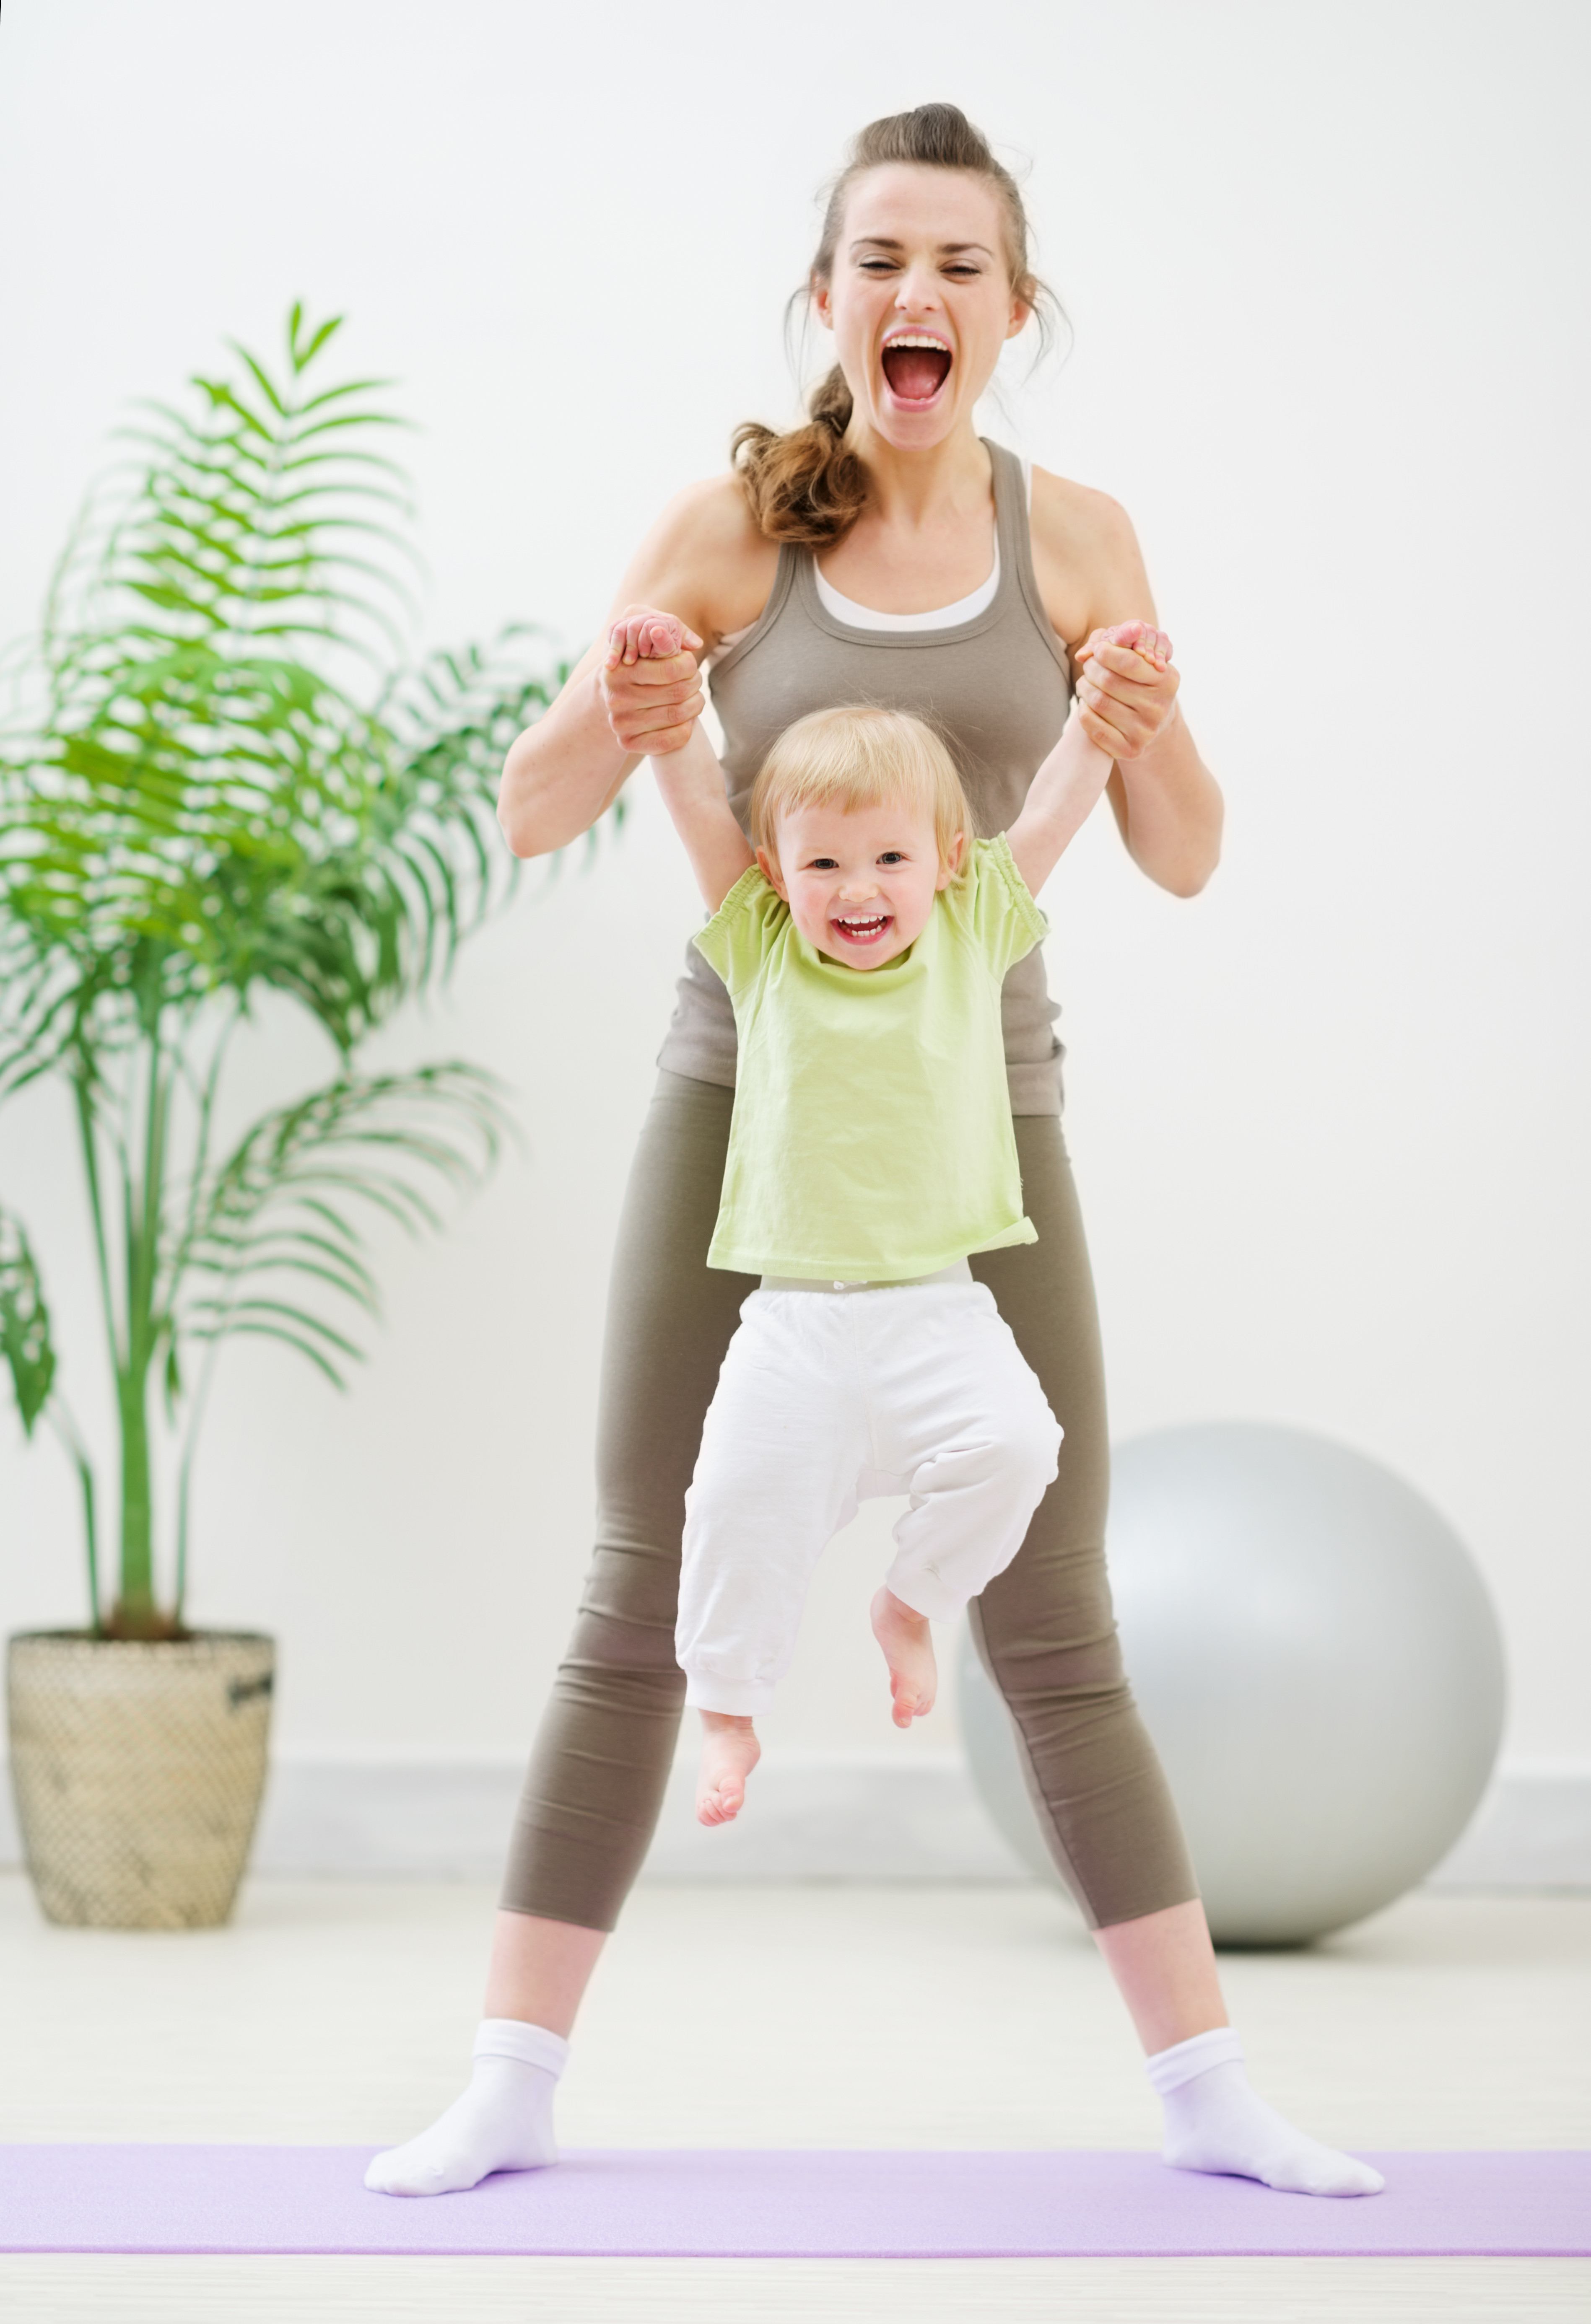 Gymnastics for toddlers 2-4 years old